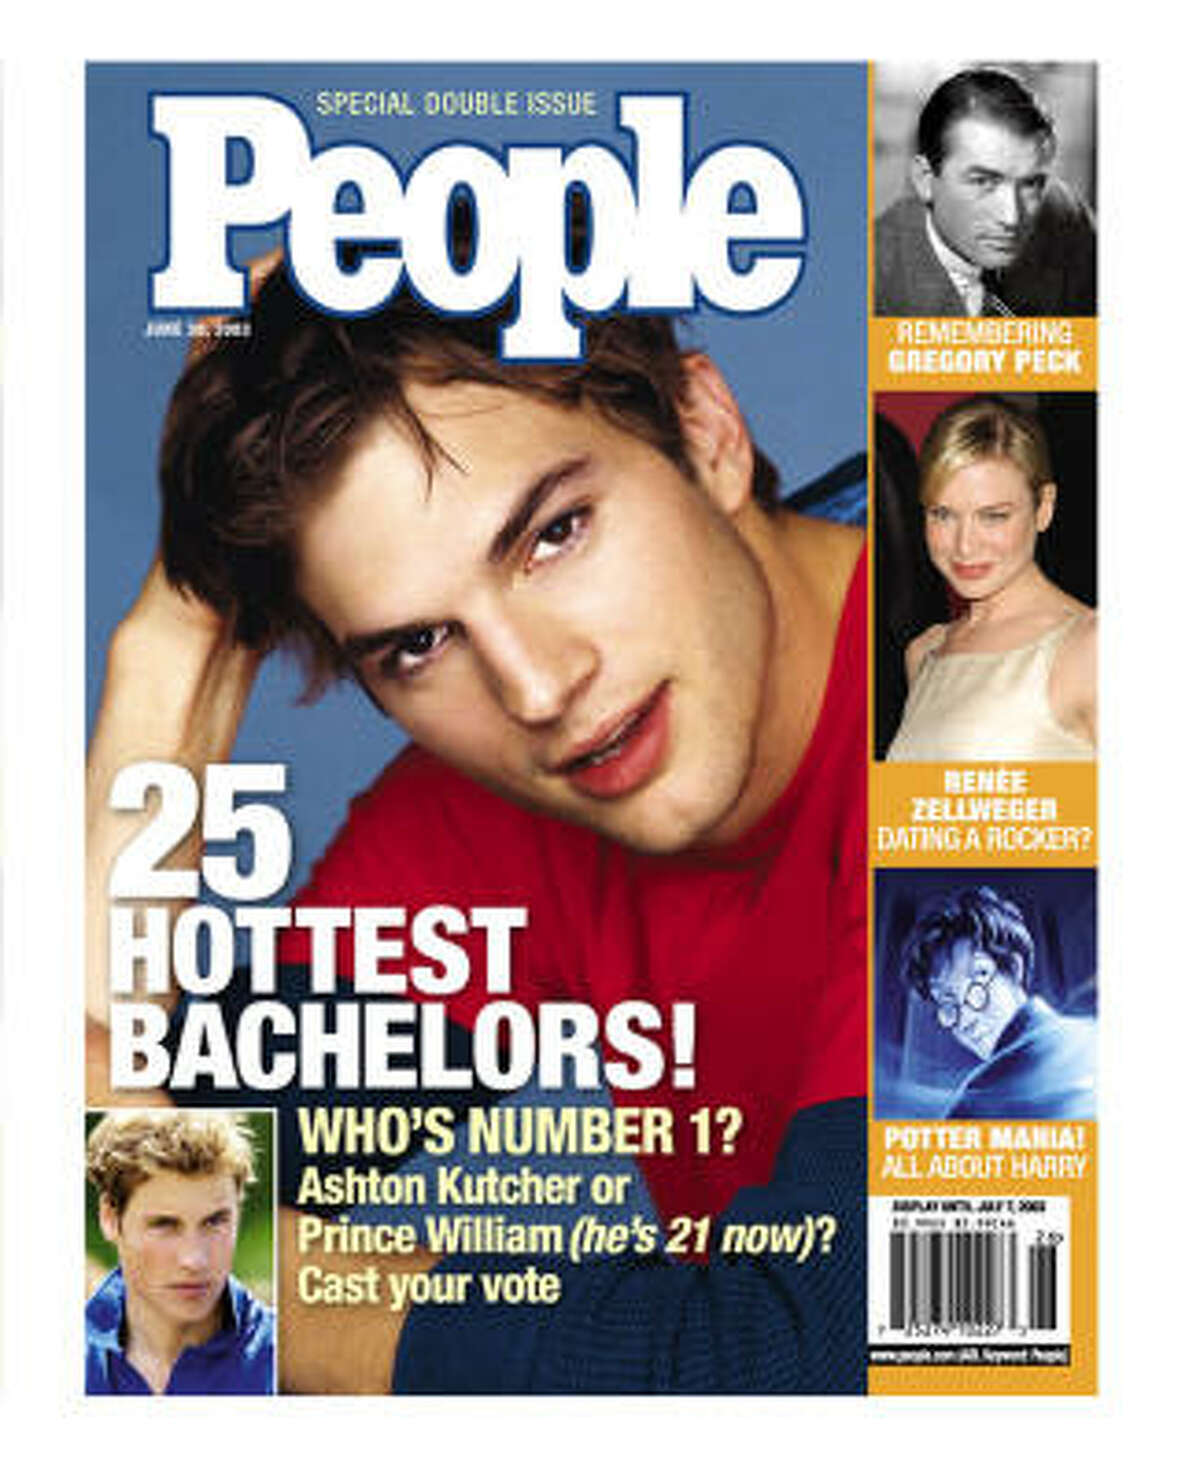 During his pre-Demi days, the model-turned-actor was on the top of People's hottest bachelors list (2003).